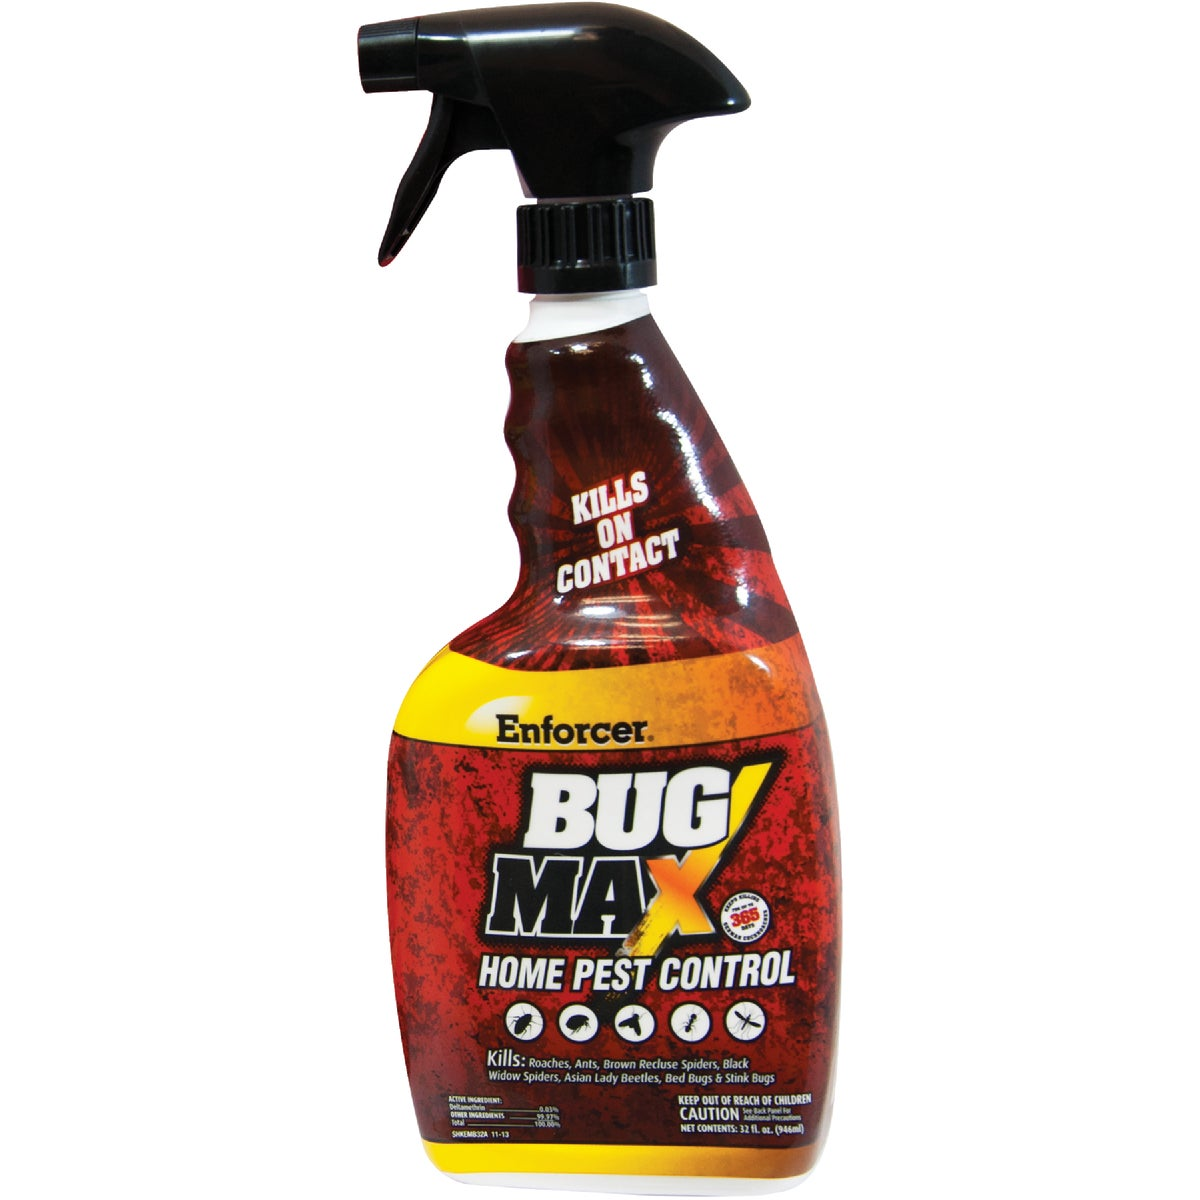 32OZ HOME PEST CONTROL - EBM32 by Zep Enforcer Inc